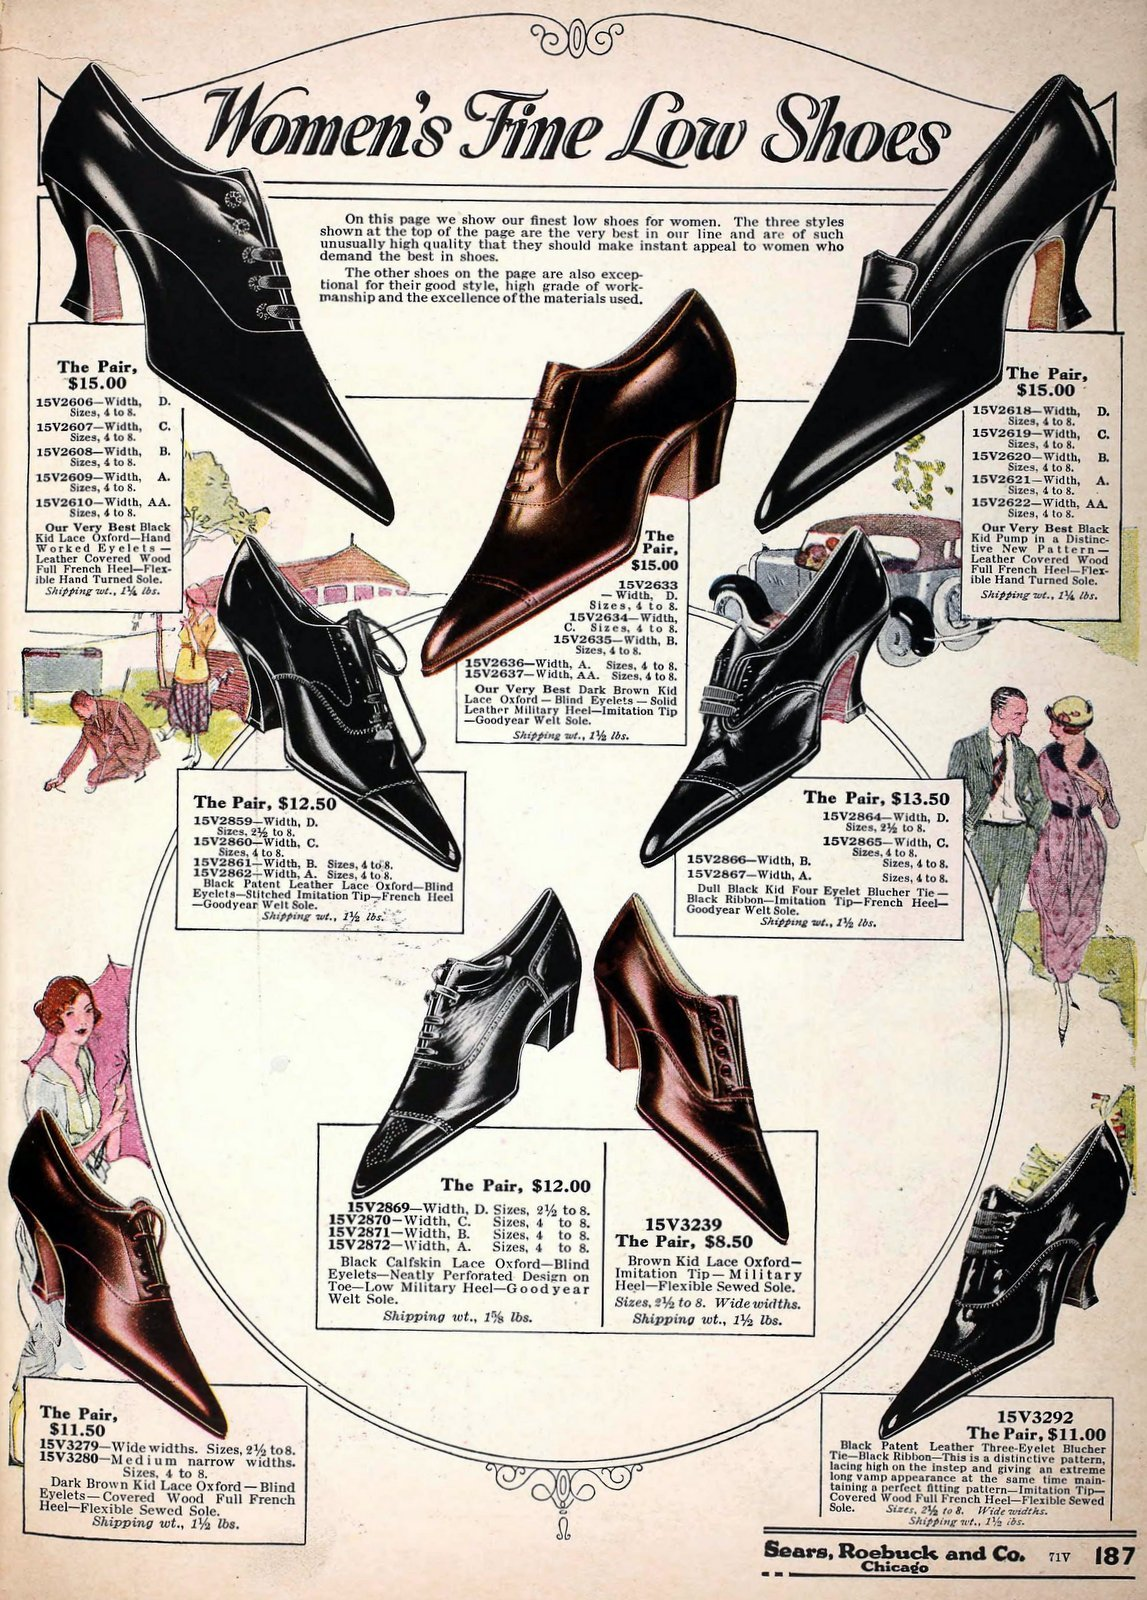 Old-fashioned women's shoes from 1920 (3)